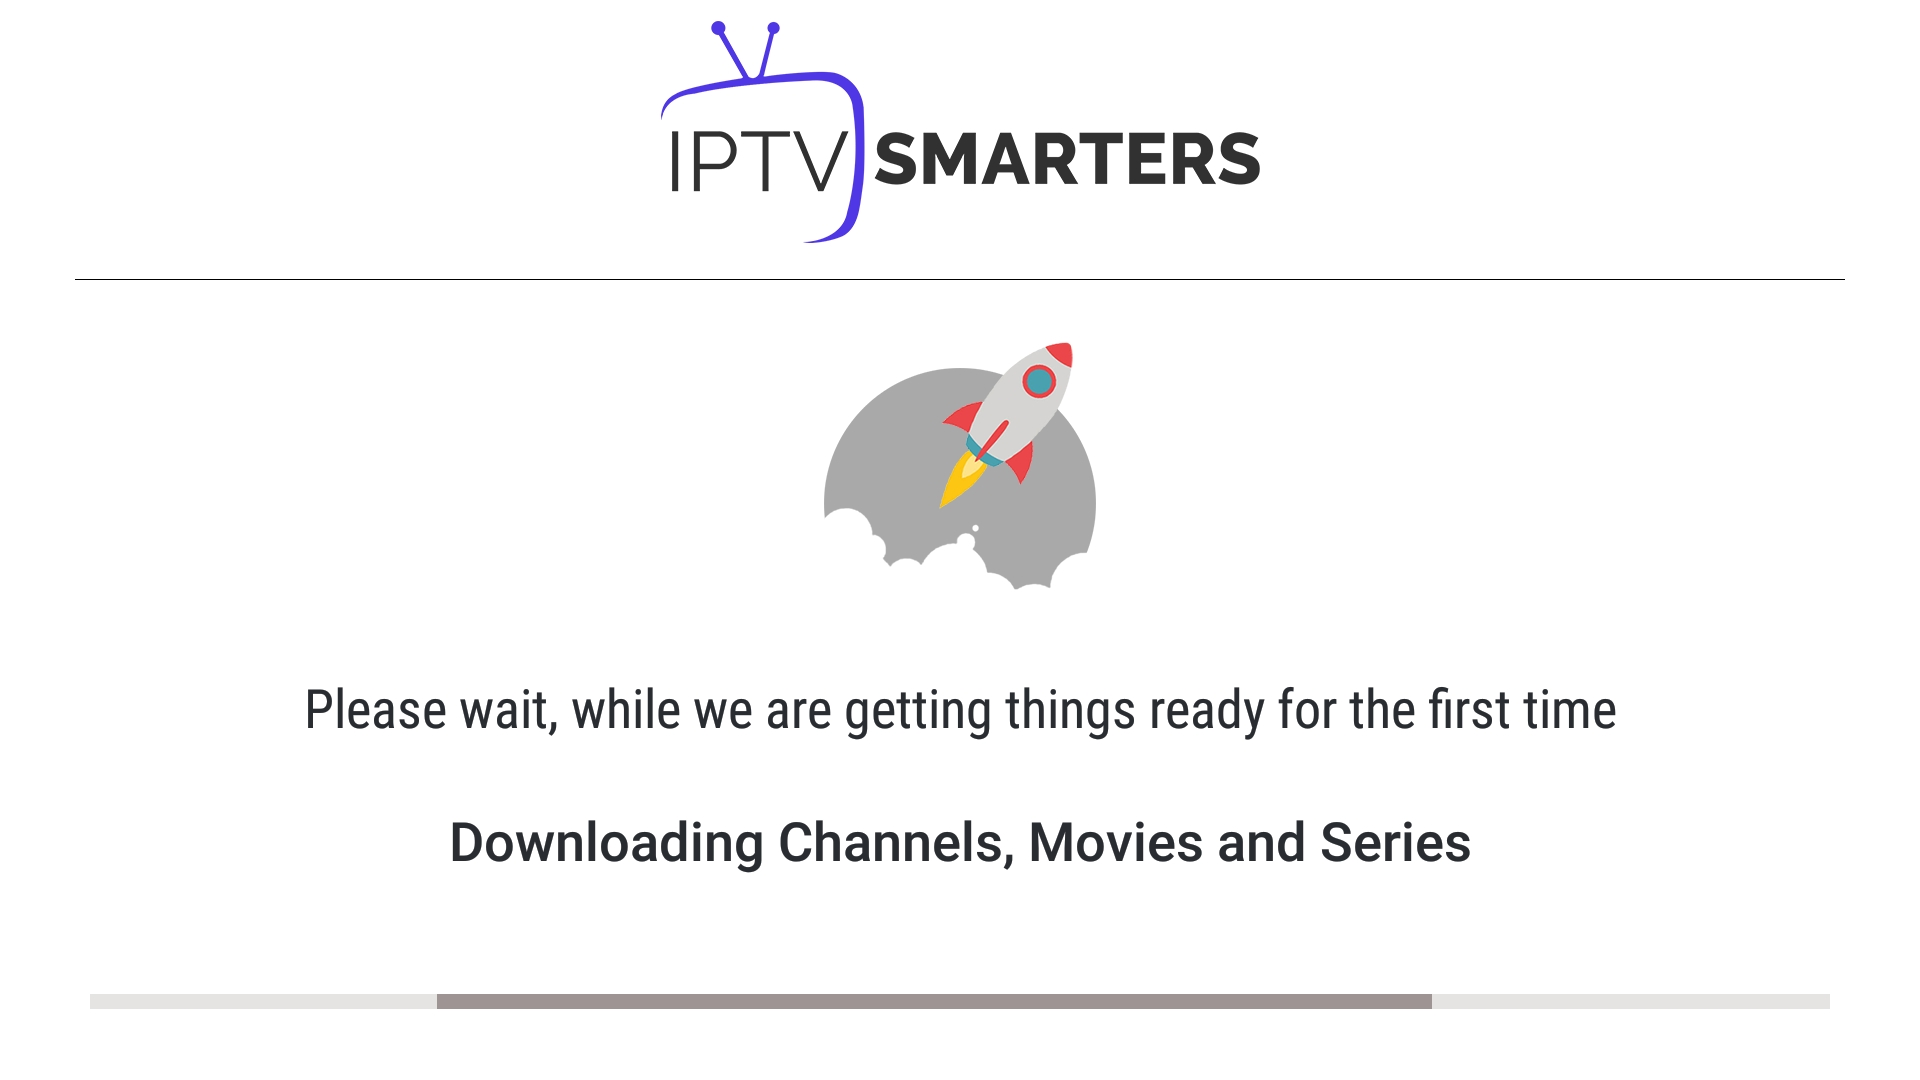 We Do Streaming! - How to setup IPTV on IPTV Smarters App?